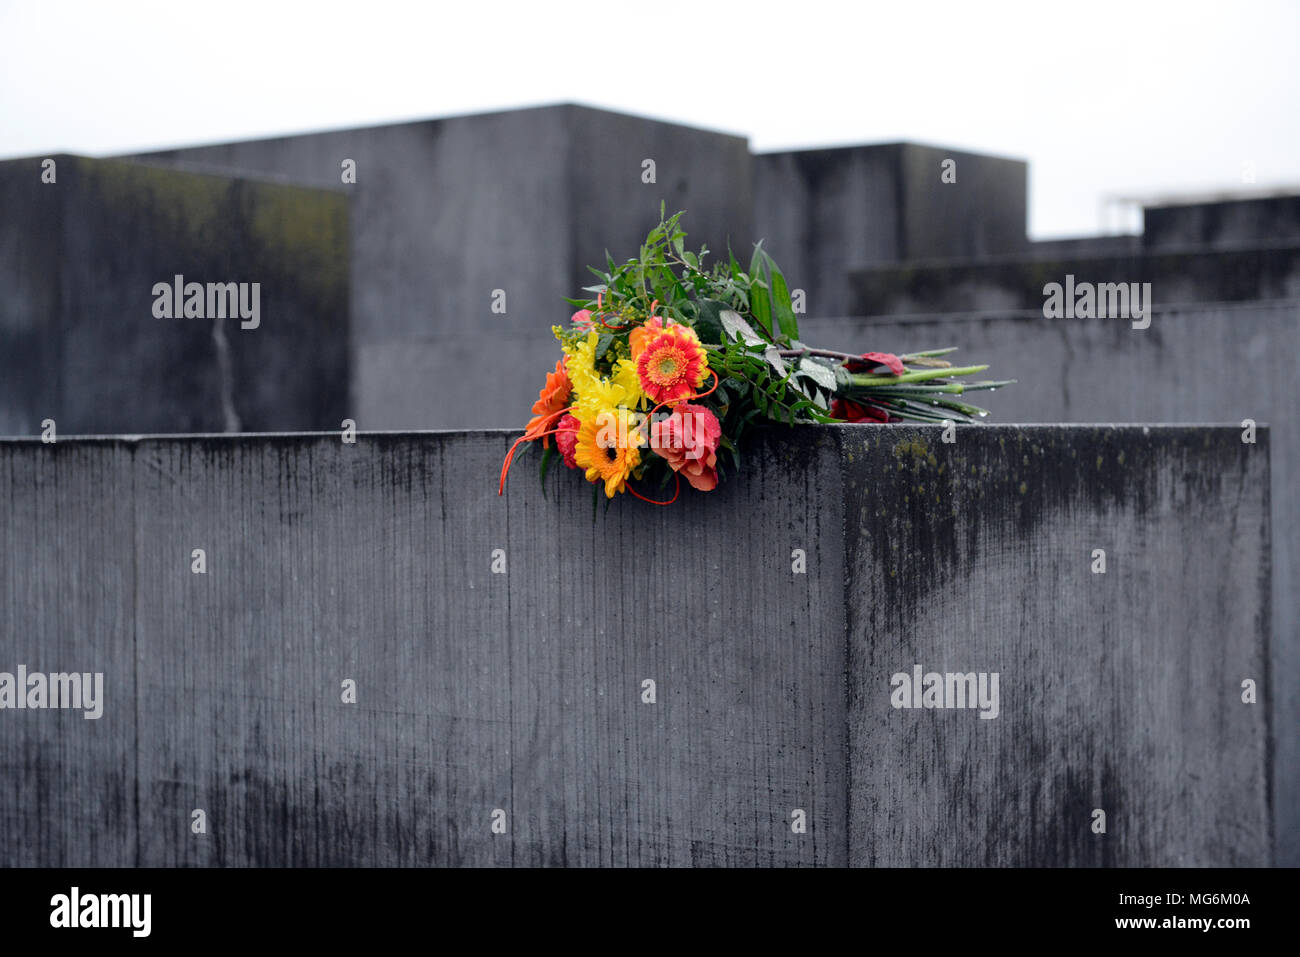 Bright bouquet of flowers contrasts with oppressive damp grey stone of Holocaust memorial Berlin Germany - Stock Image